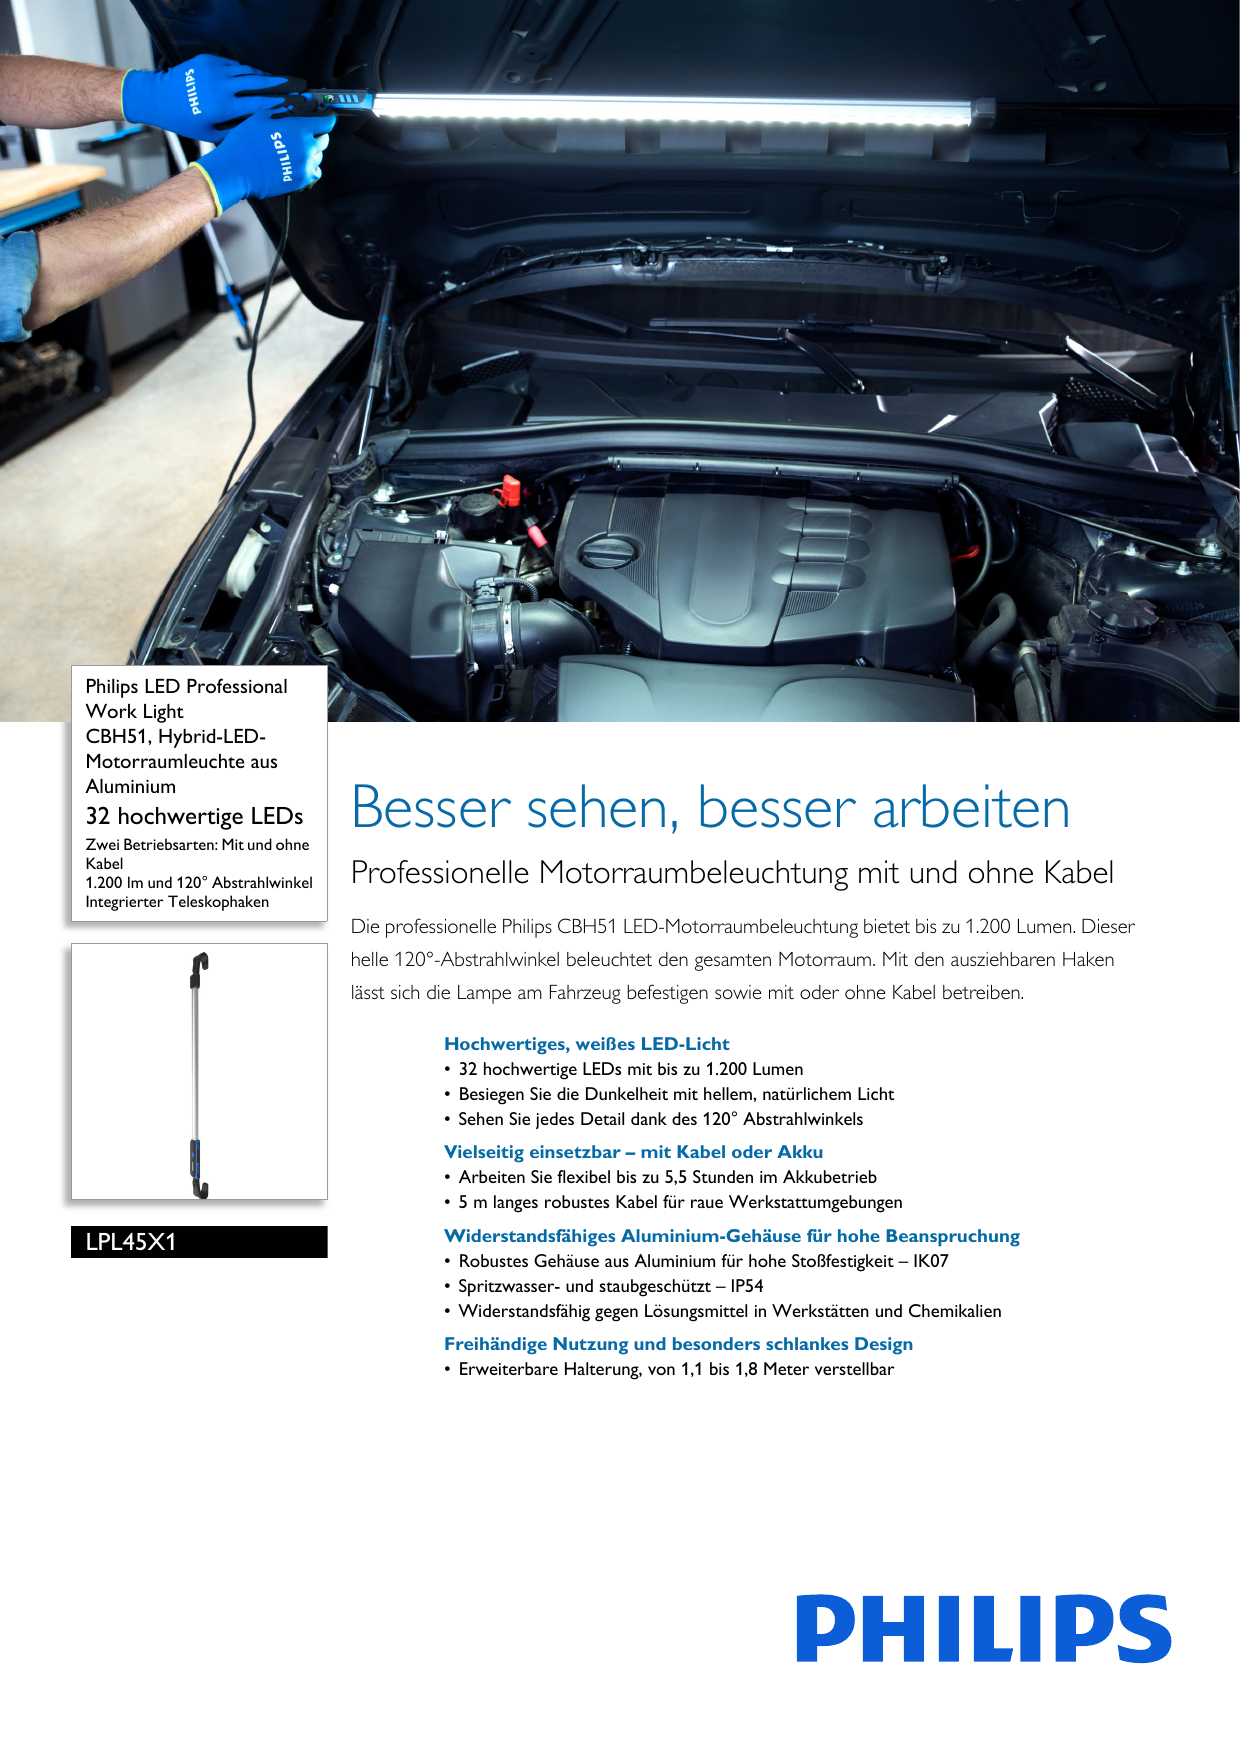 Philips LPL45X1 Leaflet Released Germany (German) User Manual Datenblatt  Pss Deude